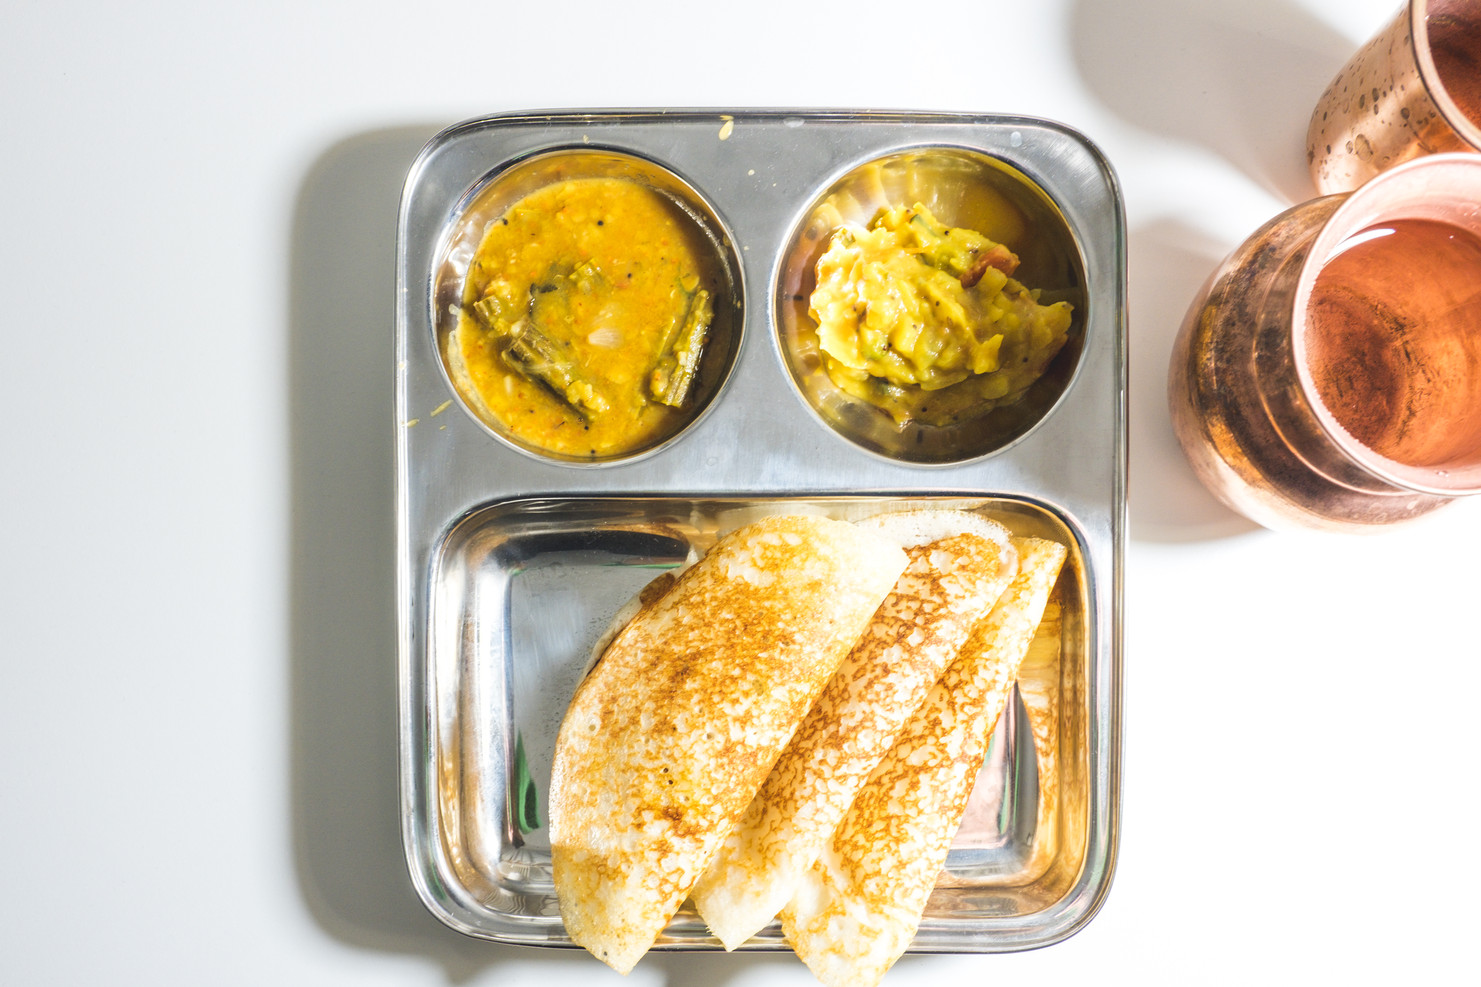 Set dosa with sambar and chutney